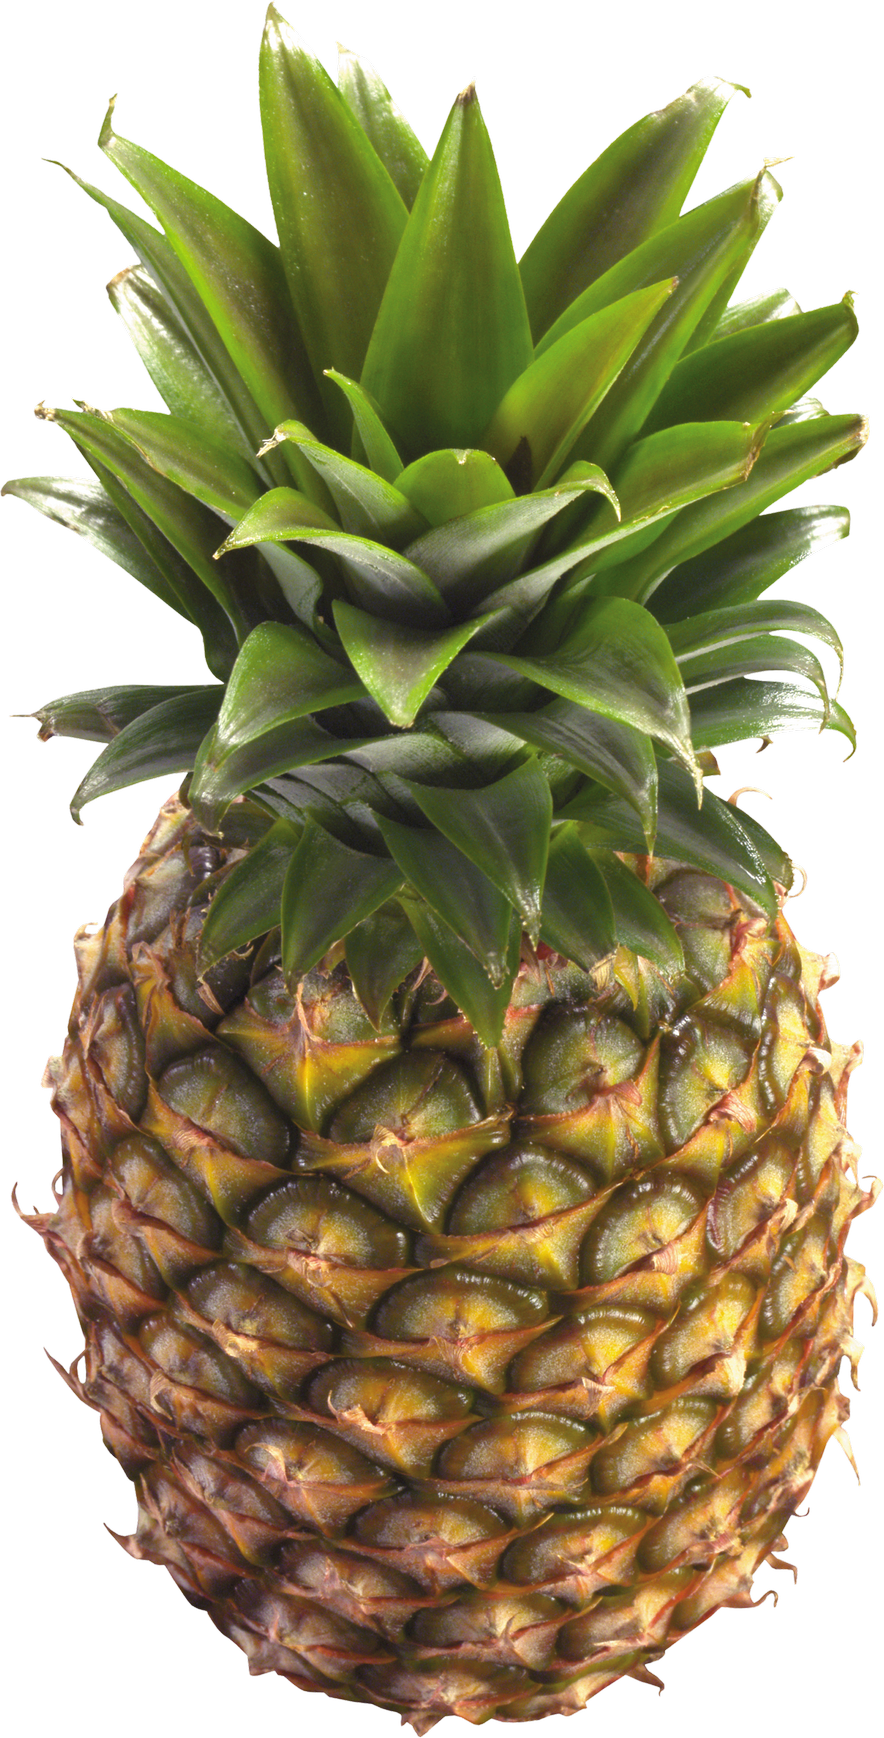 Pineapple clipart transparent. Png image purepng free